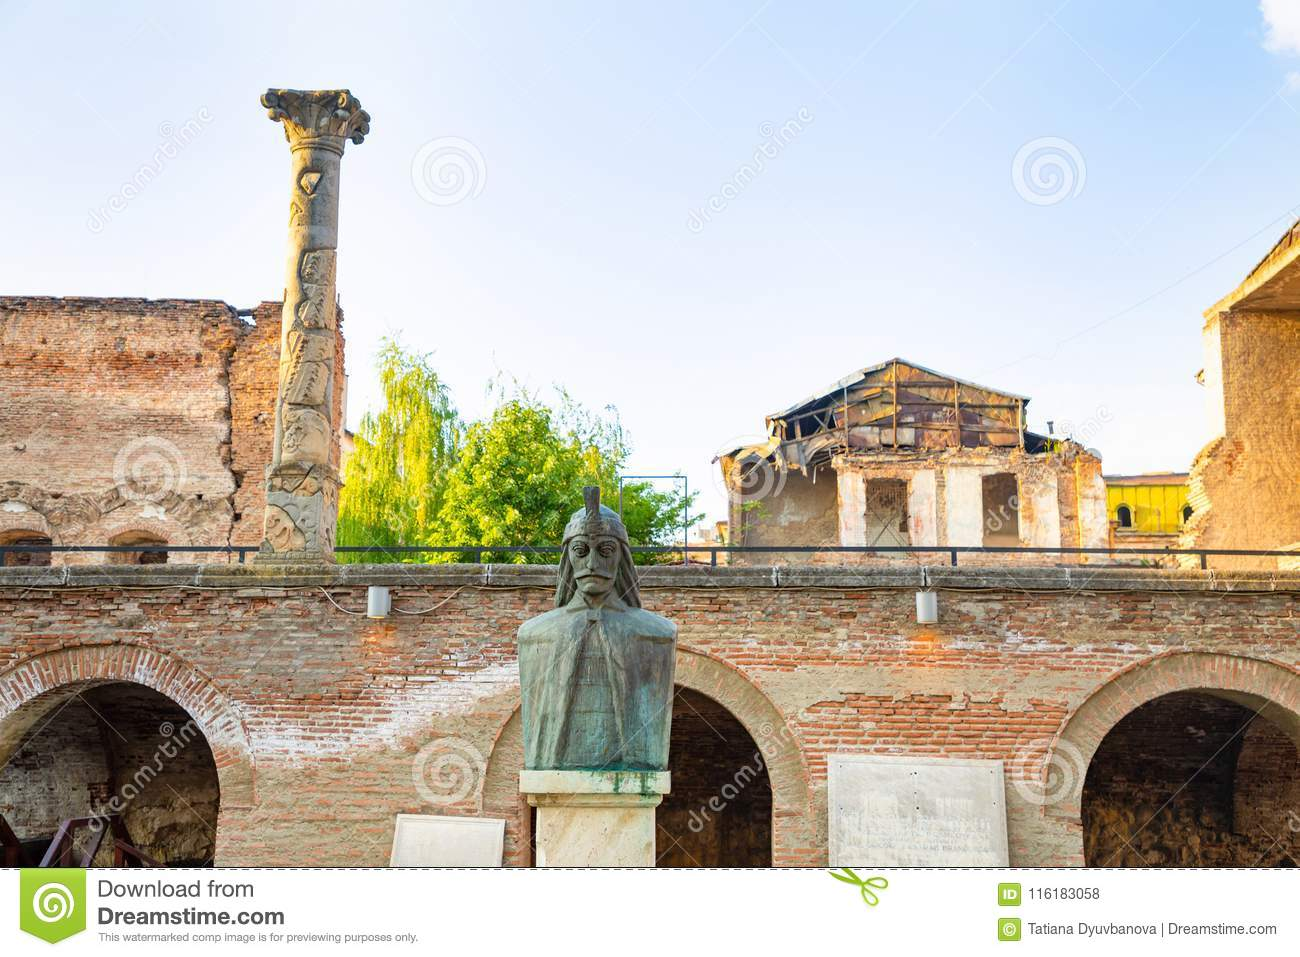 A bust of Vlad Tepes, Vlad the Impaler, the inspiration for Dracula, in the Old Princely Court, Curtea Veche, in